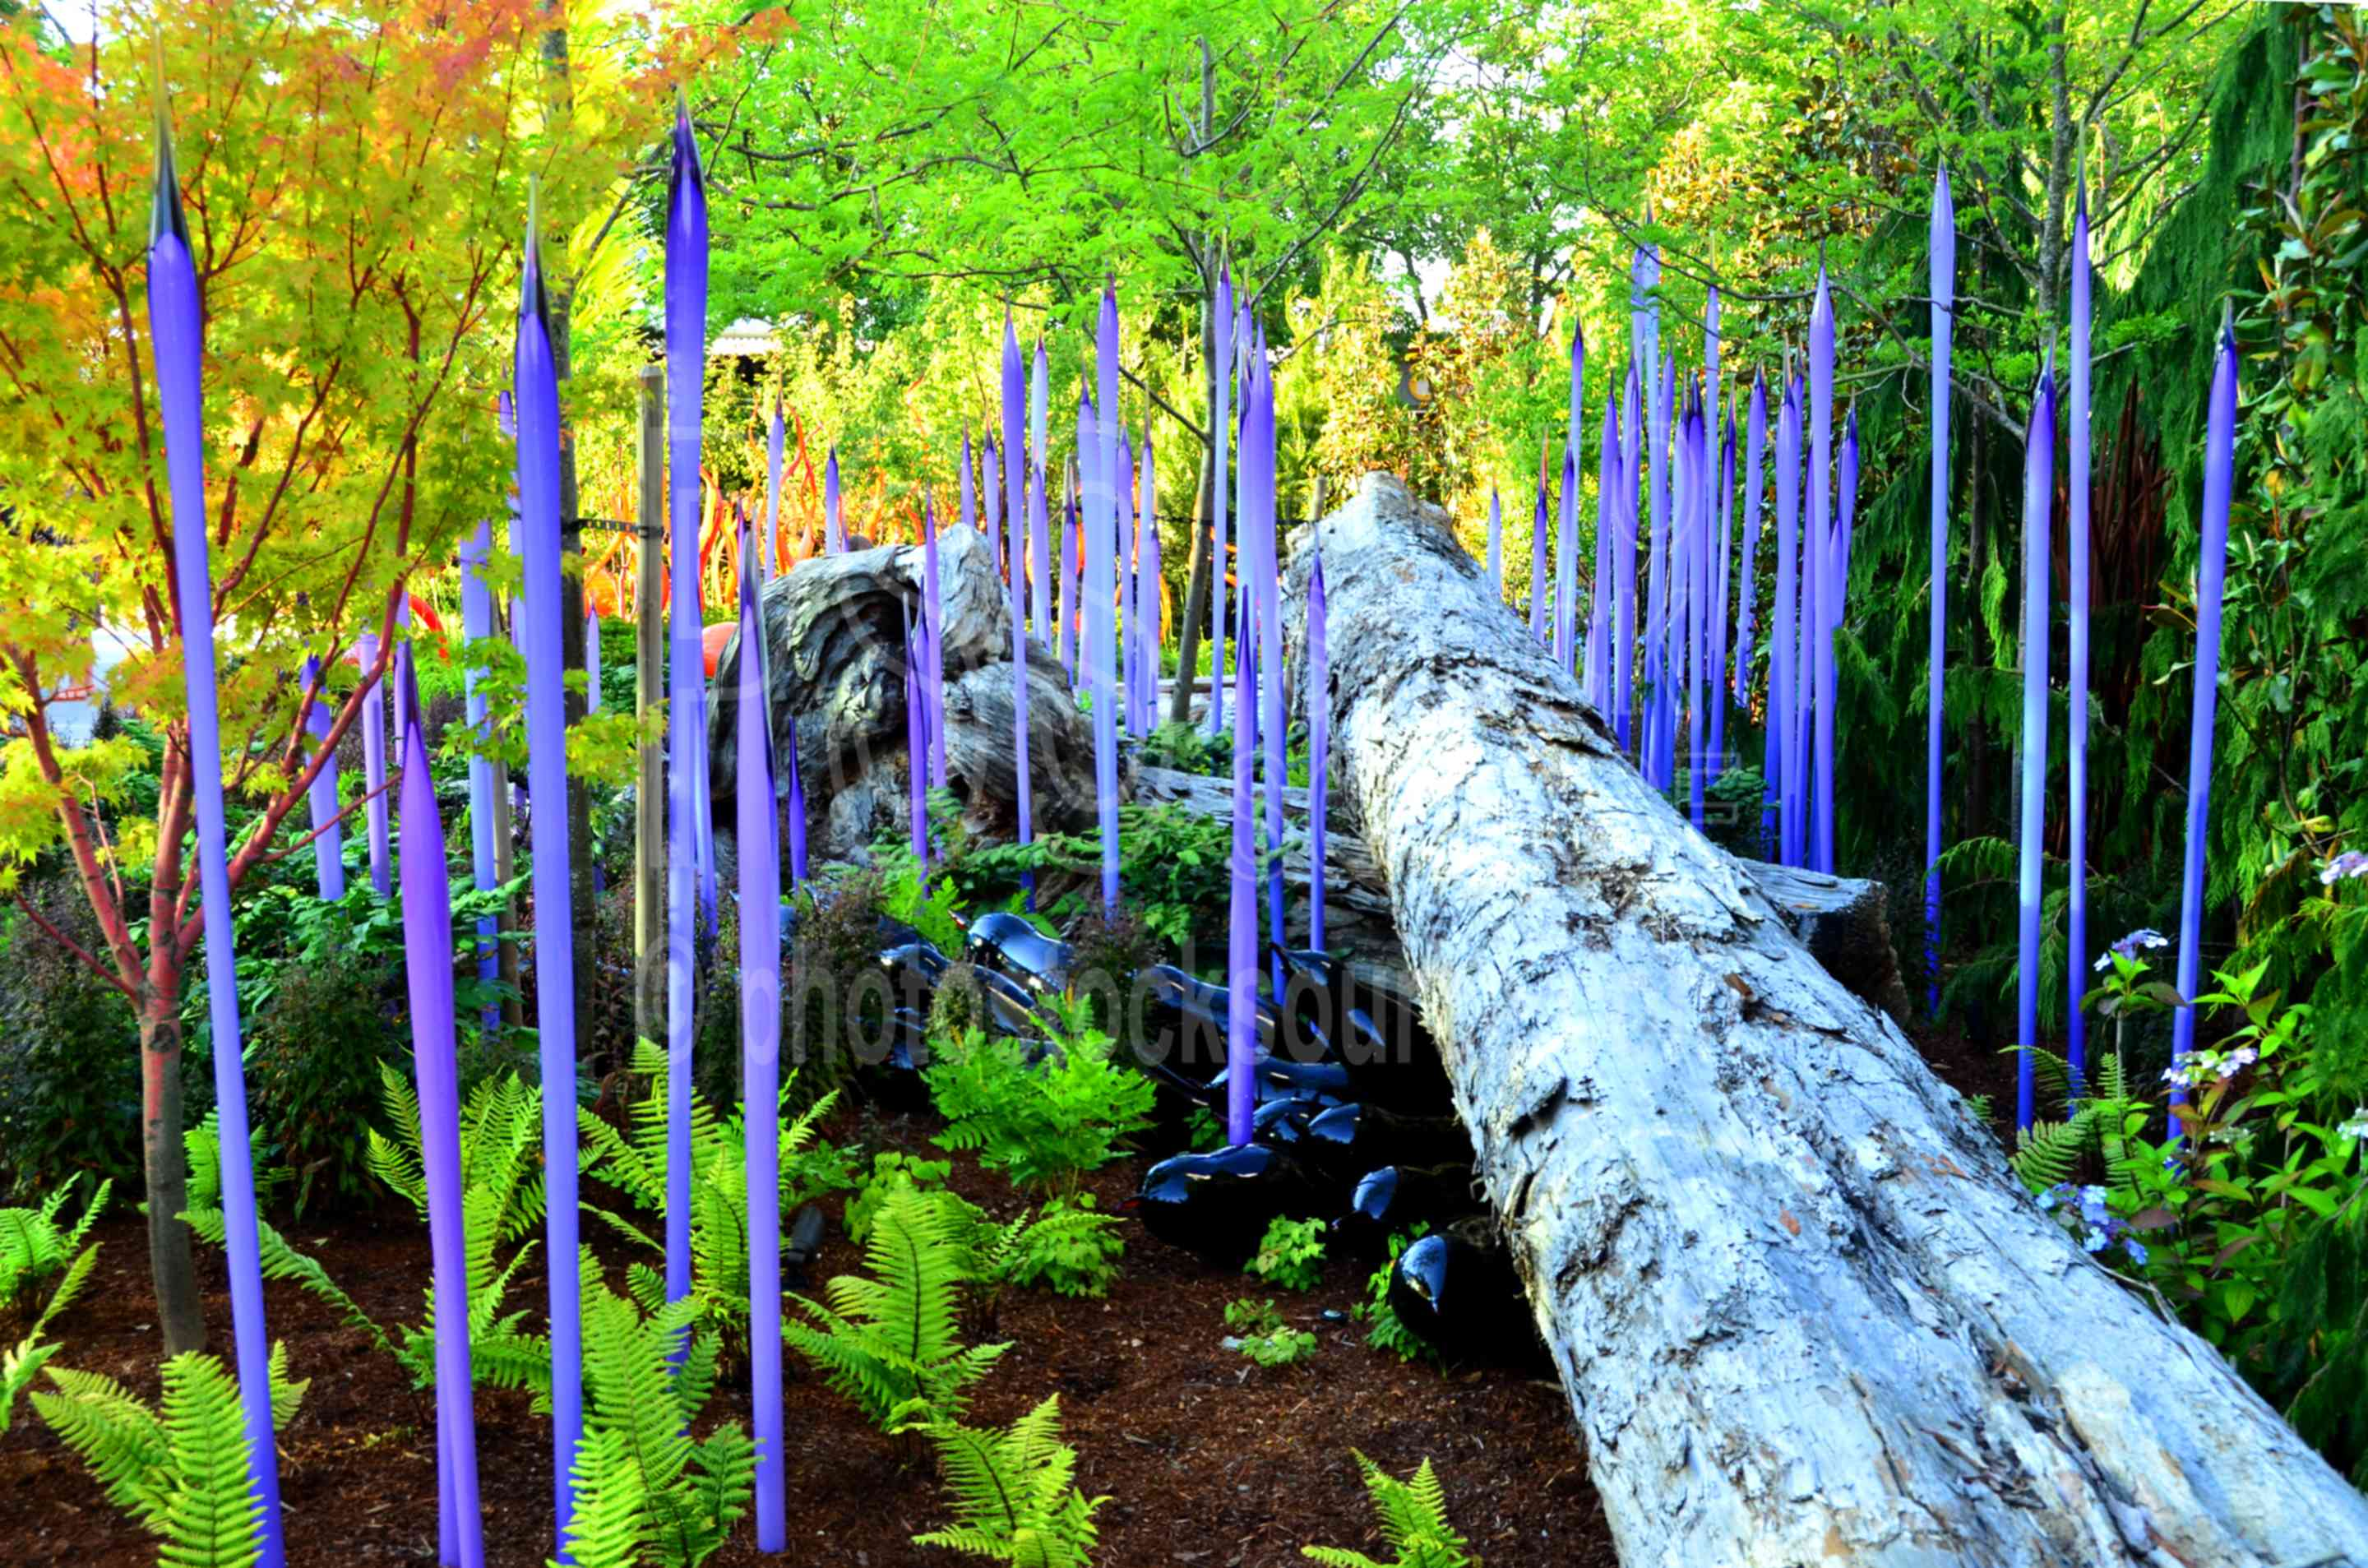 Photo of Glass Spires in the Garden by Photo Stock Source art ...